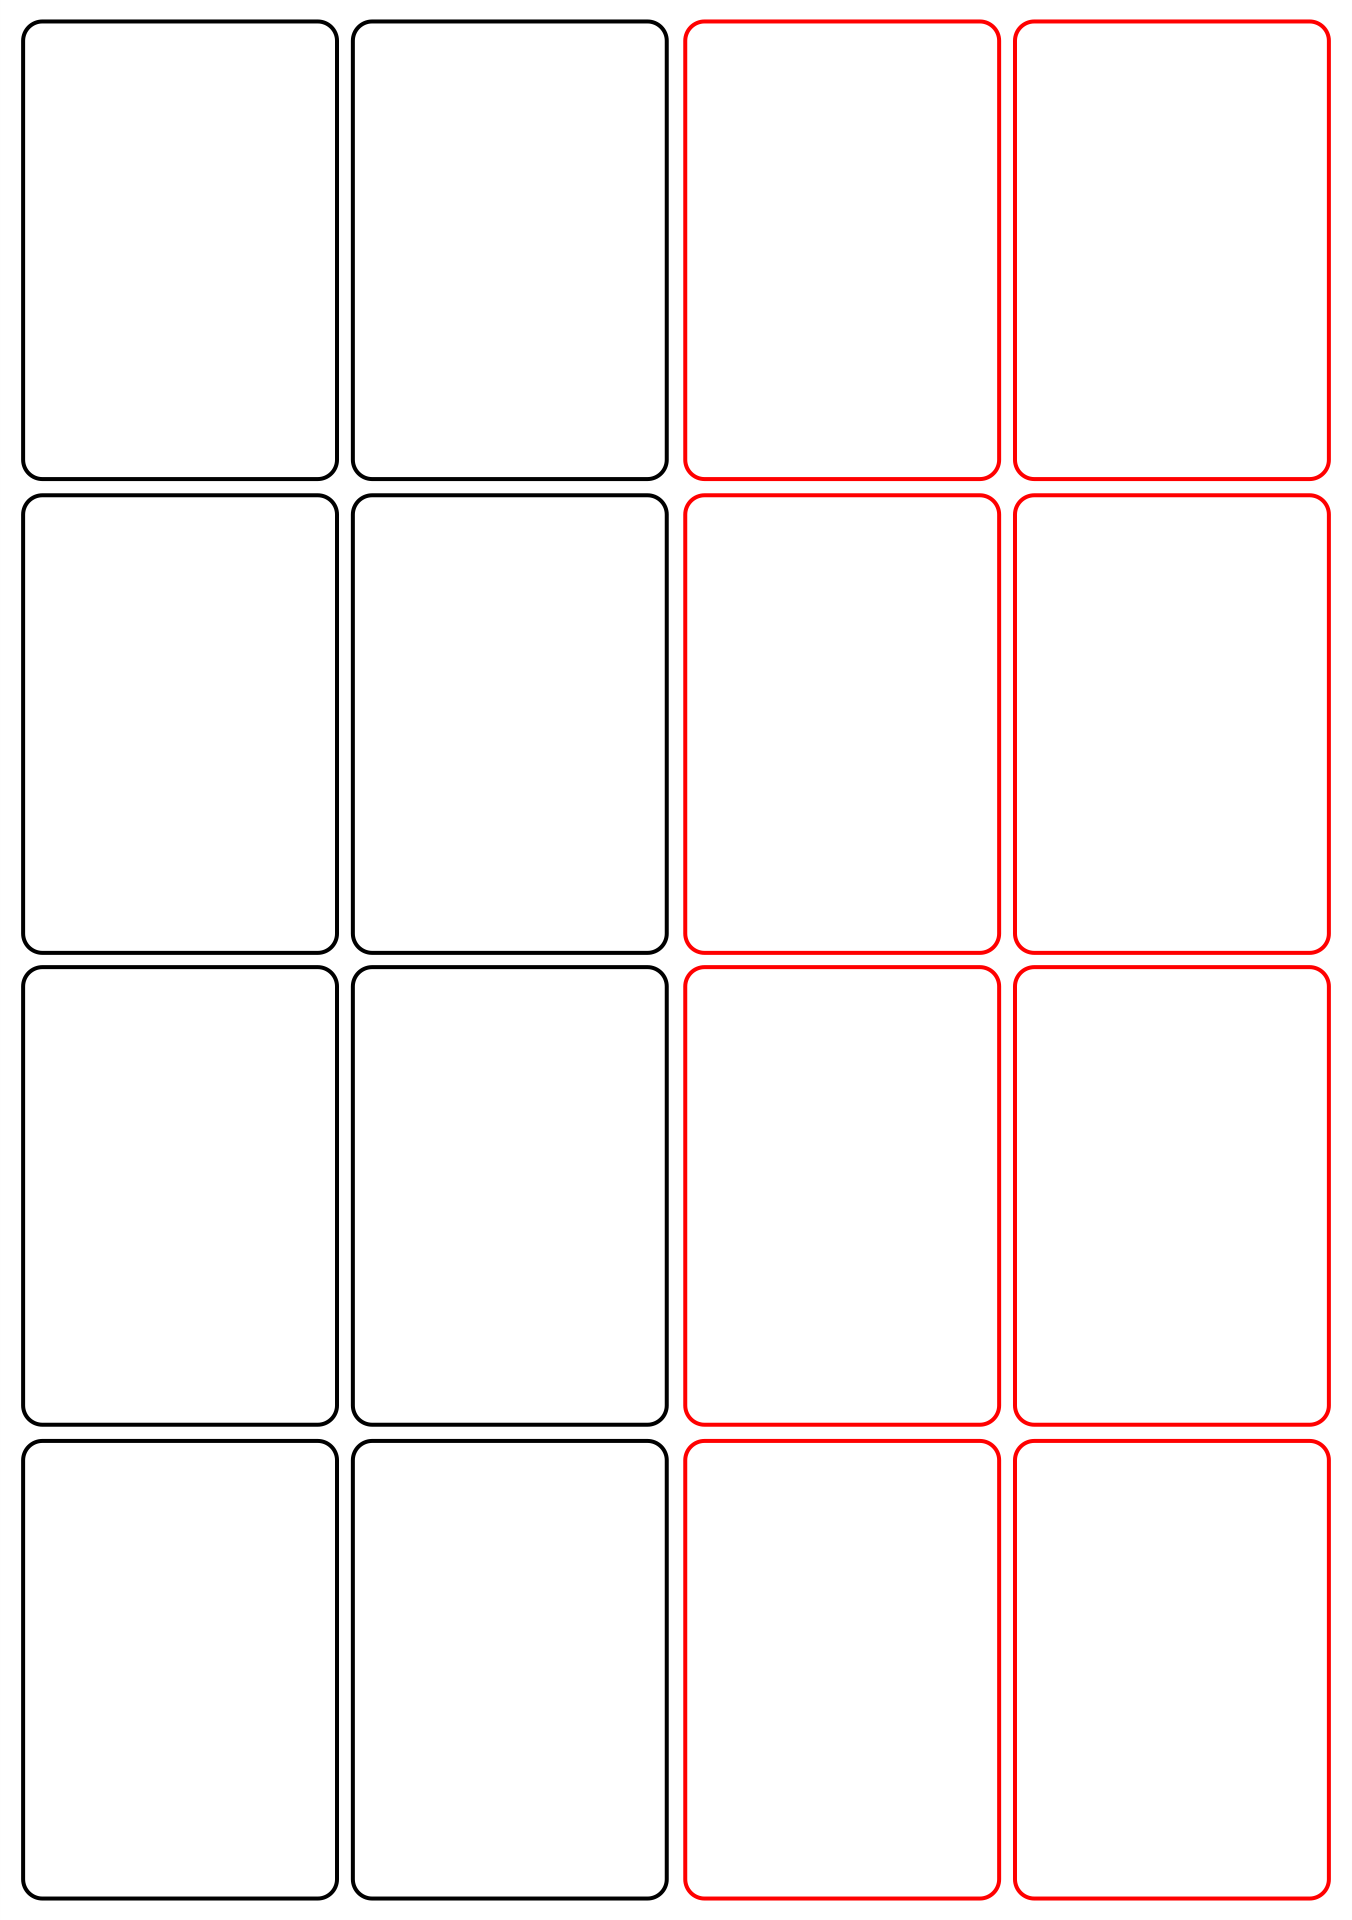 8 best images of blank playing card printable template for for Postcard template for pages